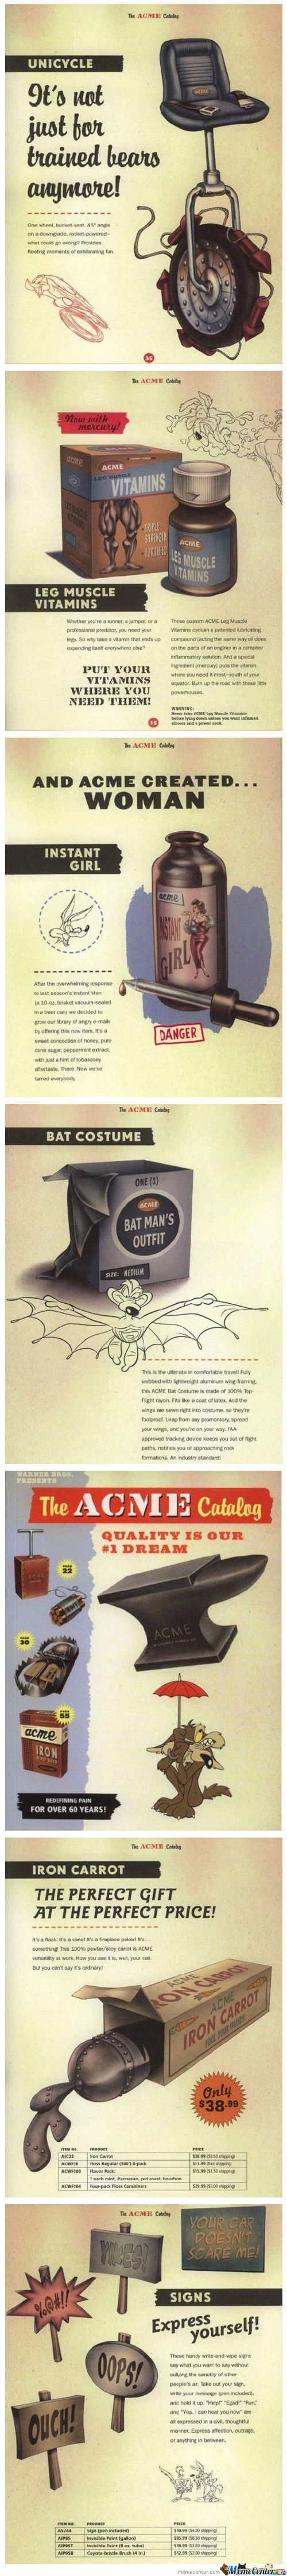 Awesome Acme Ad Posters